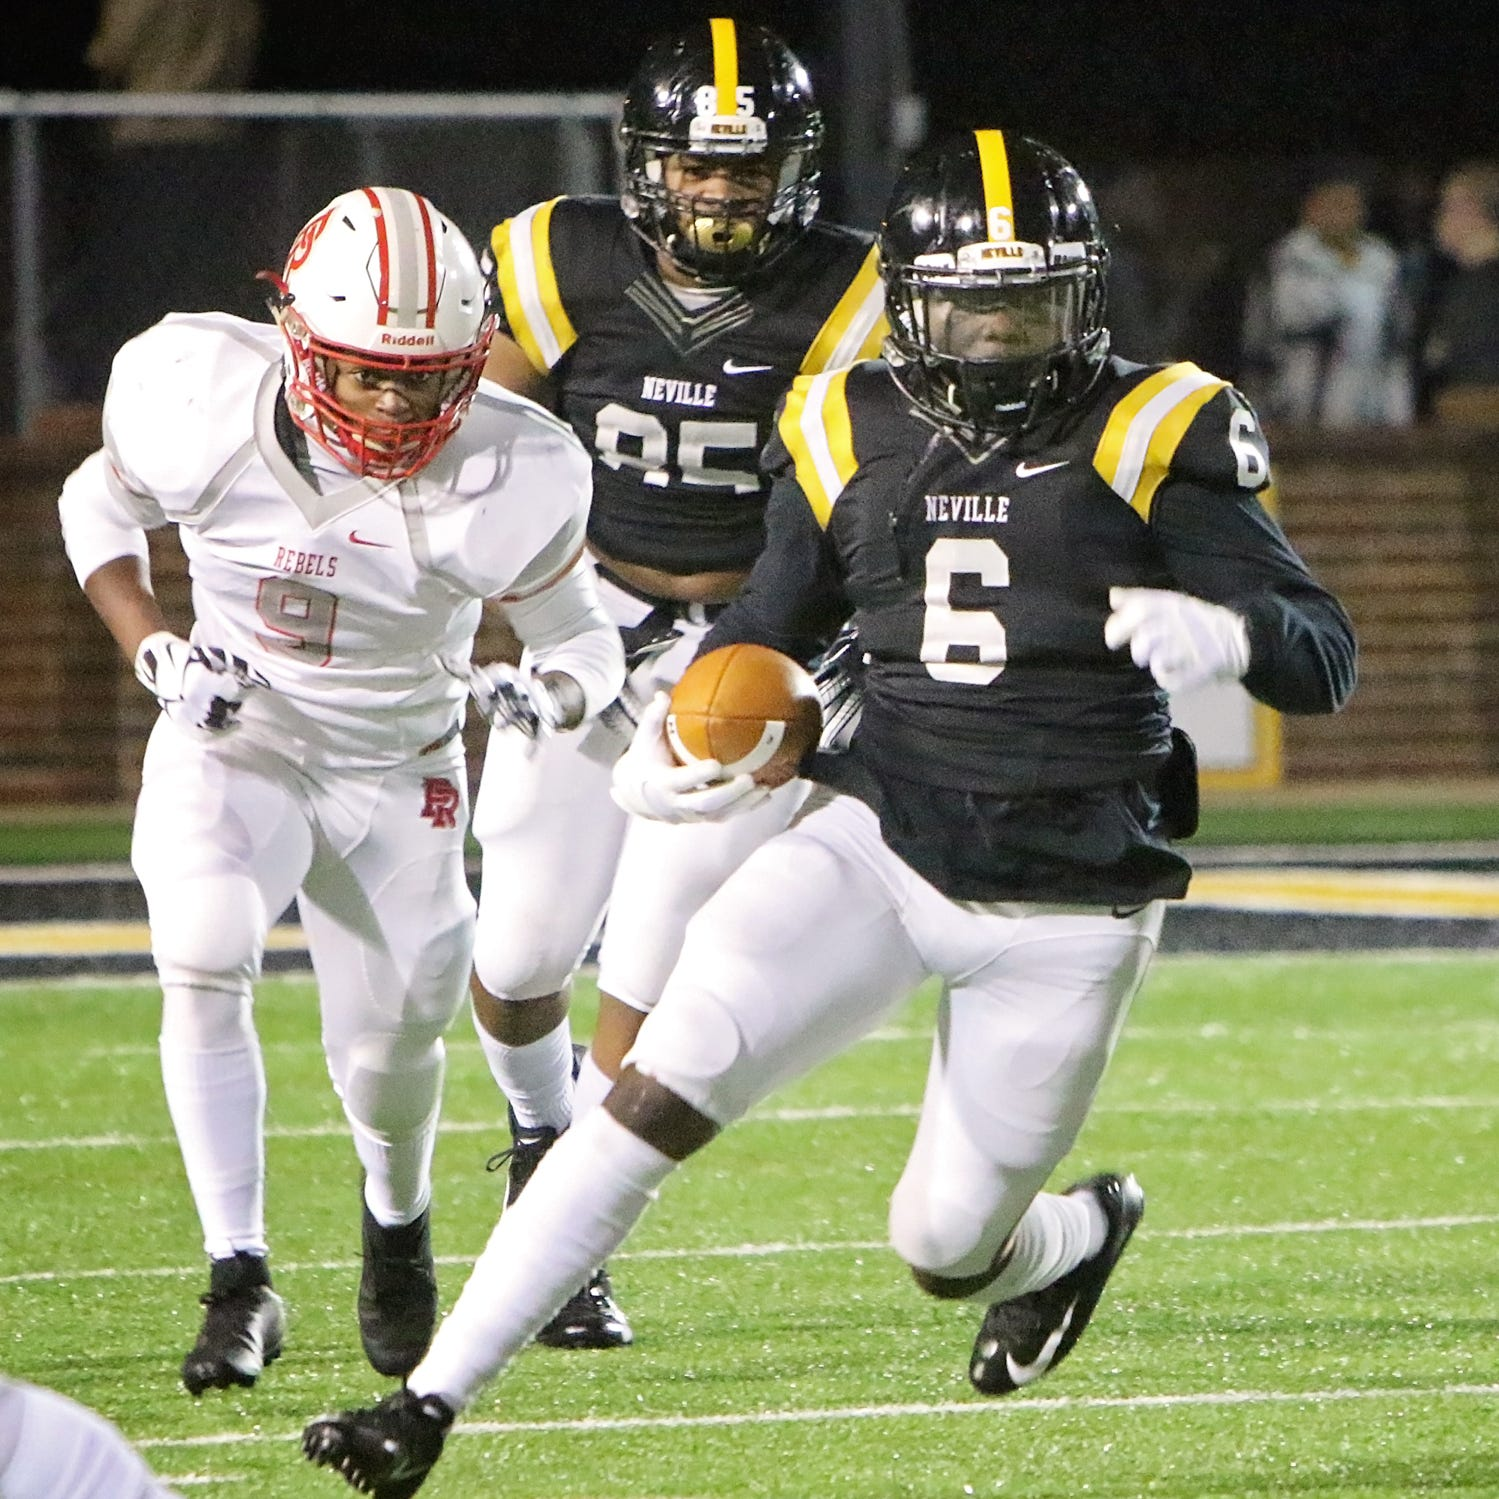 Second round of playoffs brought the Pearl River Rebels to Bill Ruple Stadium to battle the Neville Tigers friday night in Monroe, November 16